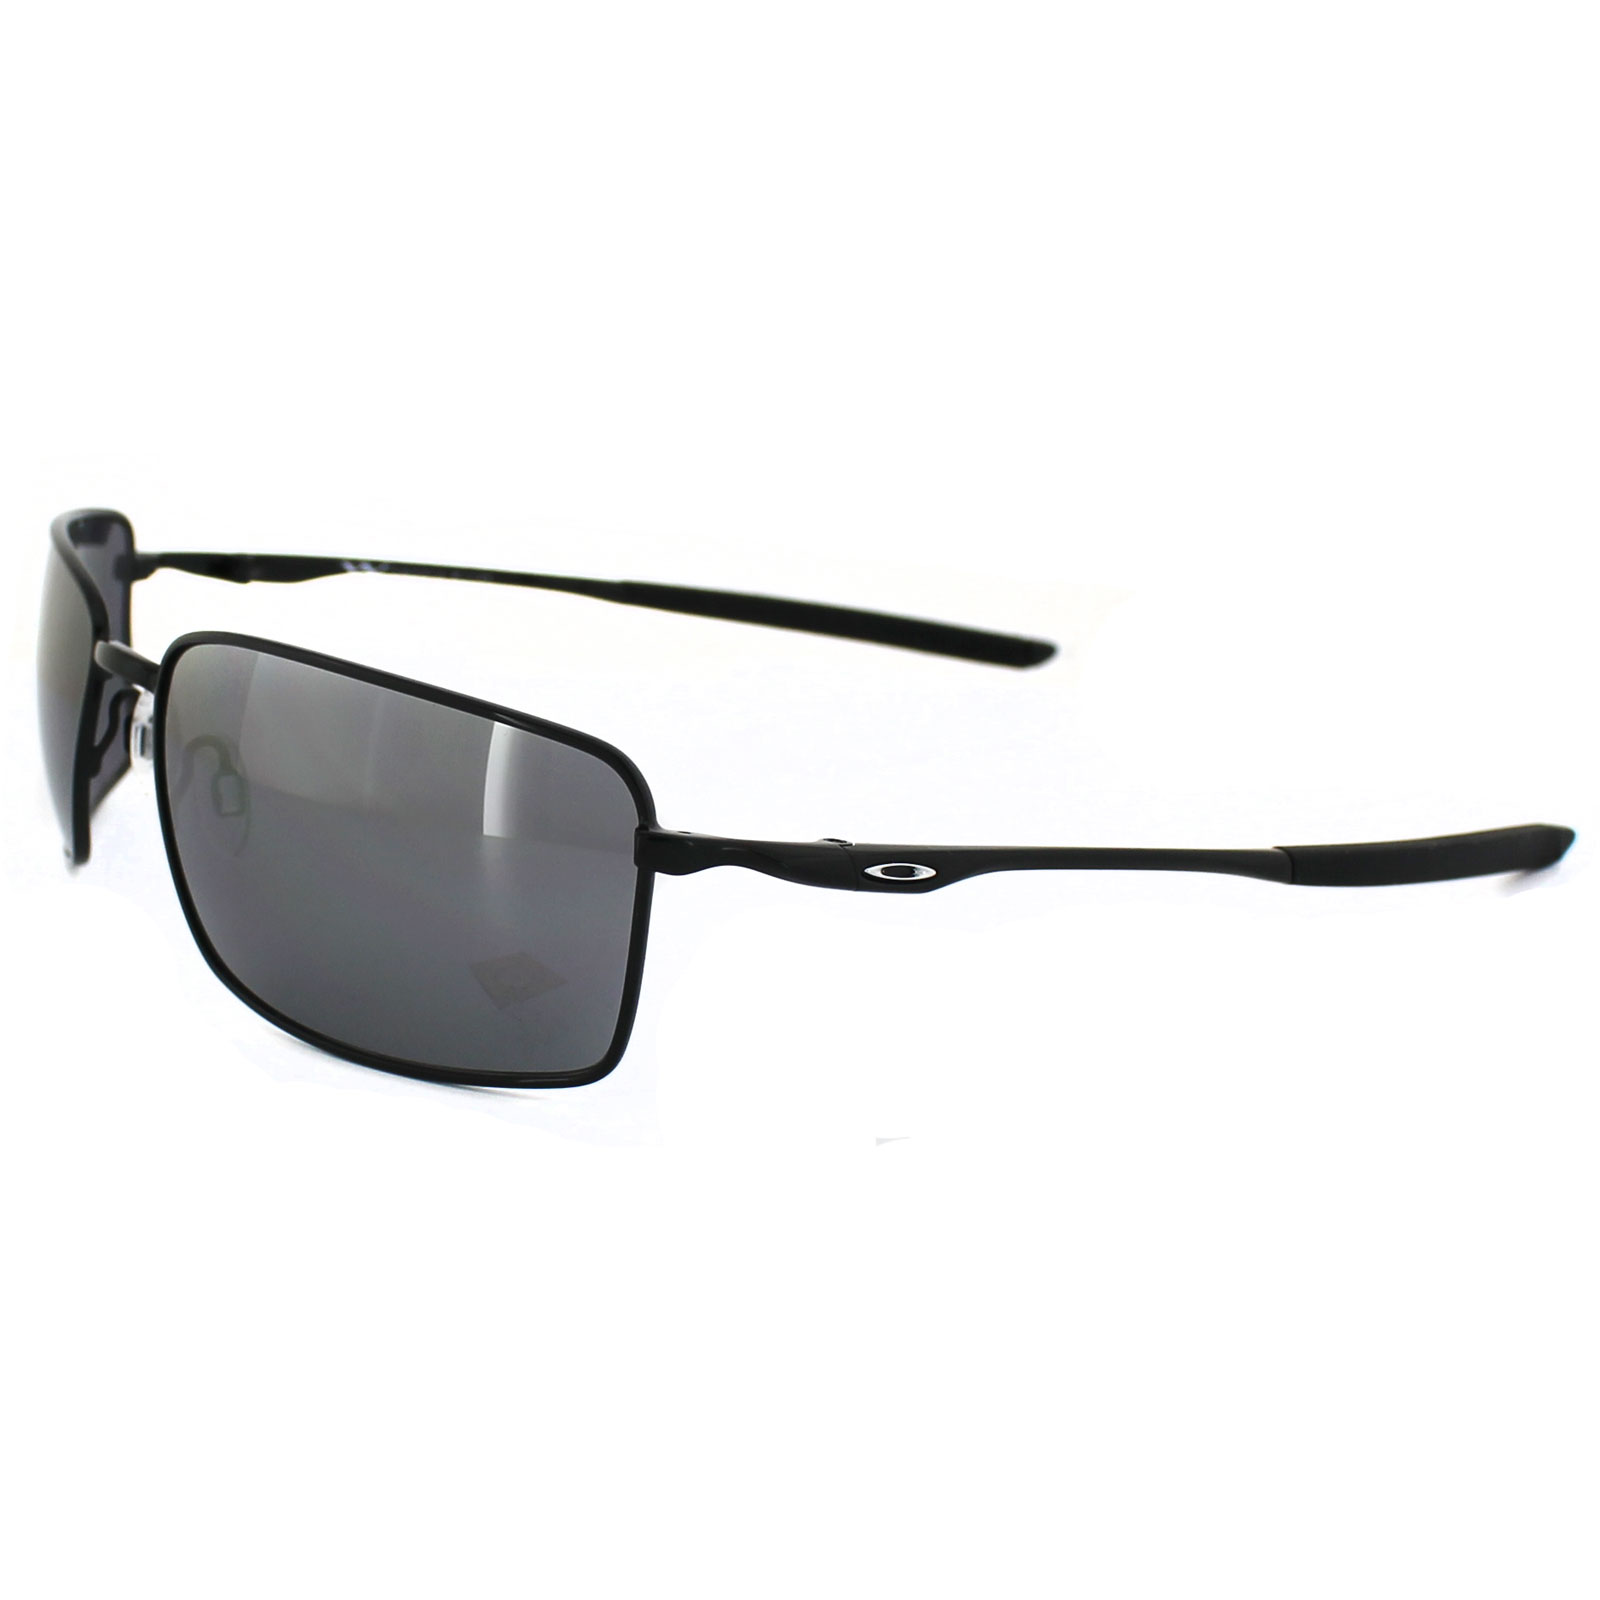 3e2eade87 Sentinel Oakley Sunglasses Square Wire OO4075-01 Polished Black Black  Iridium